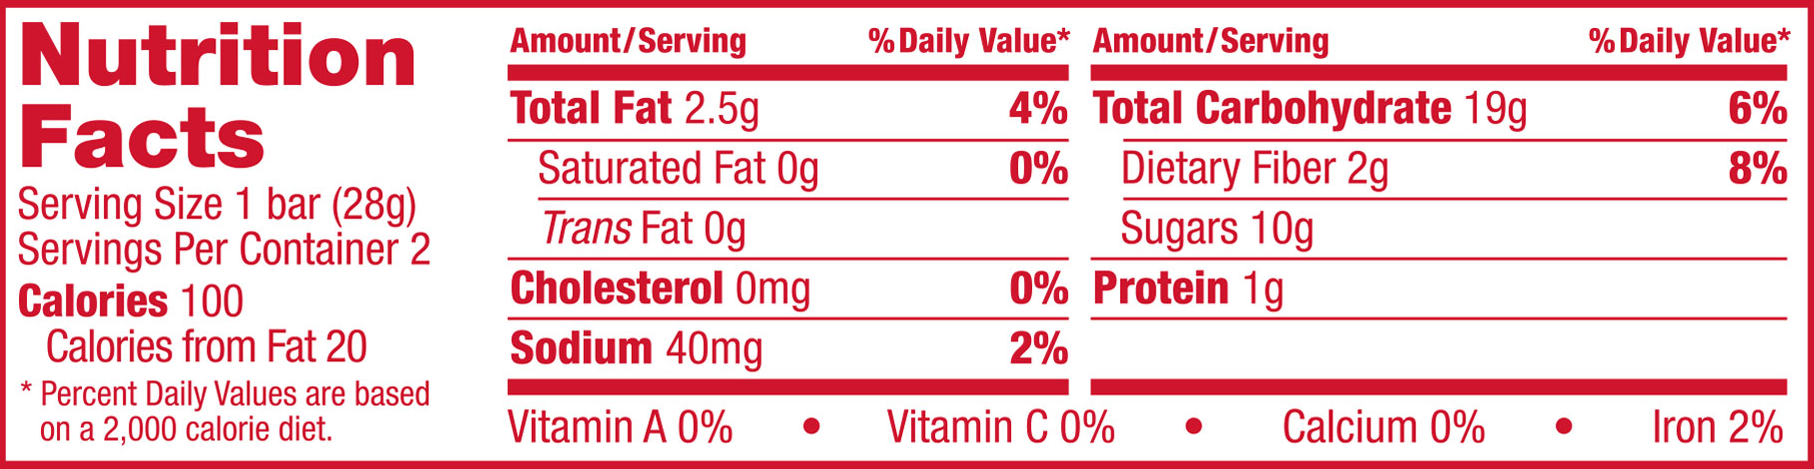 Whole Wheat Strawberry Nutrition Panel